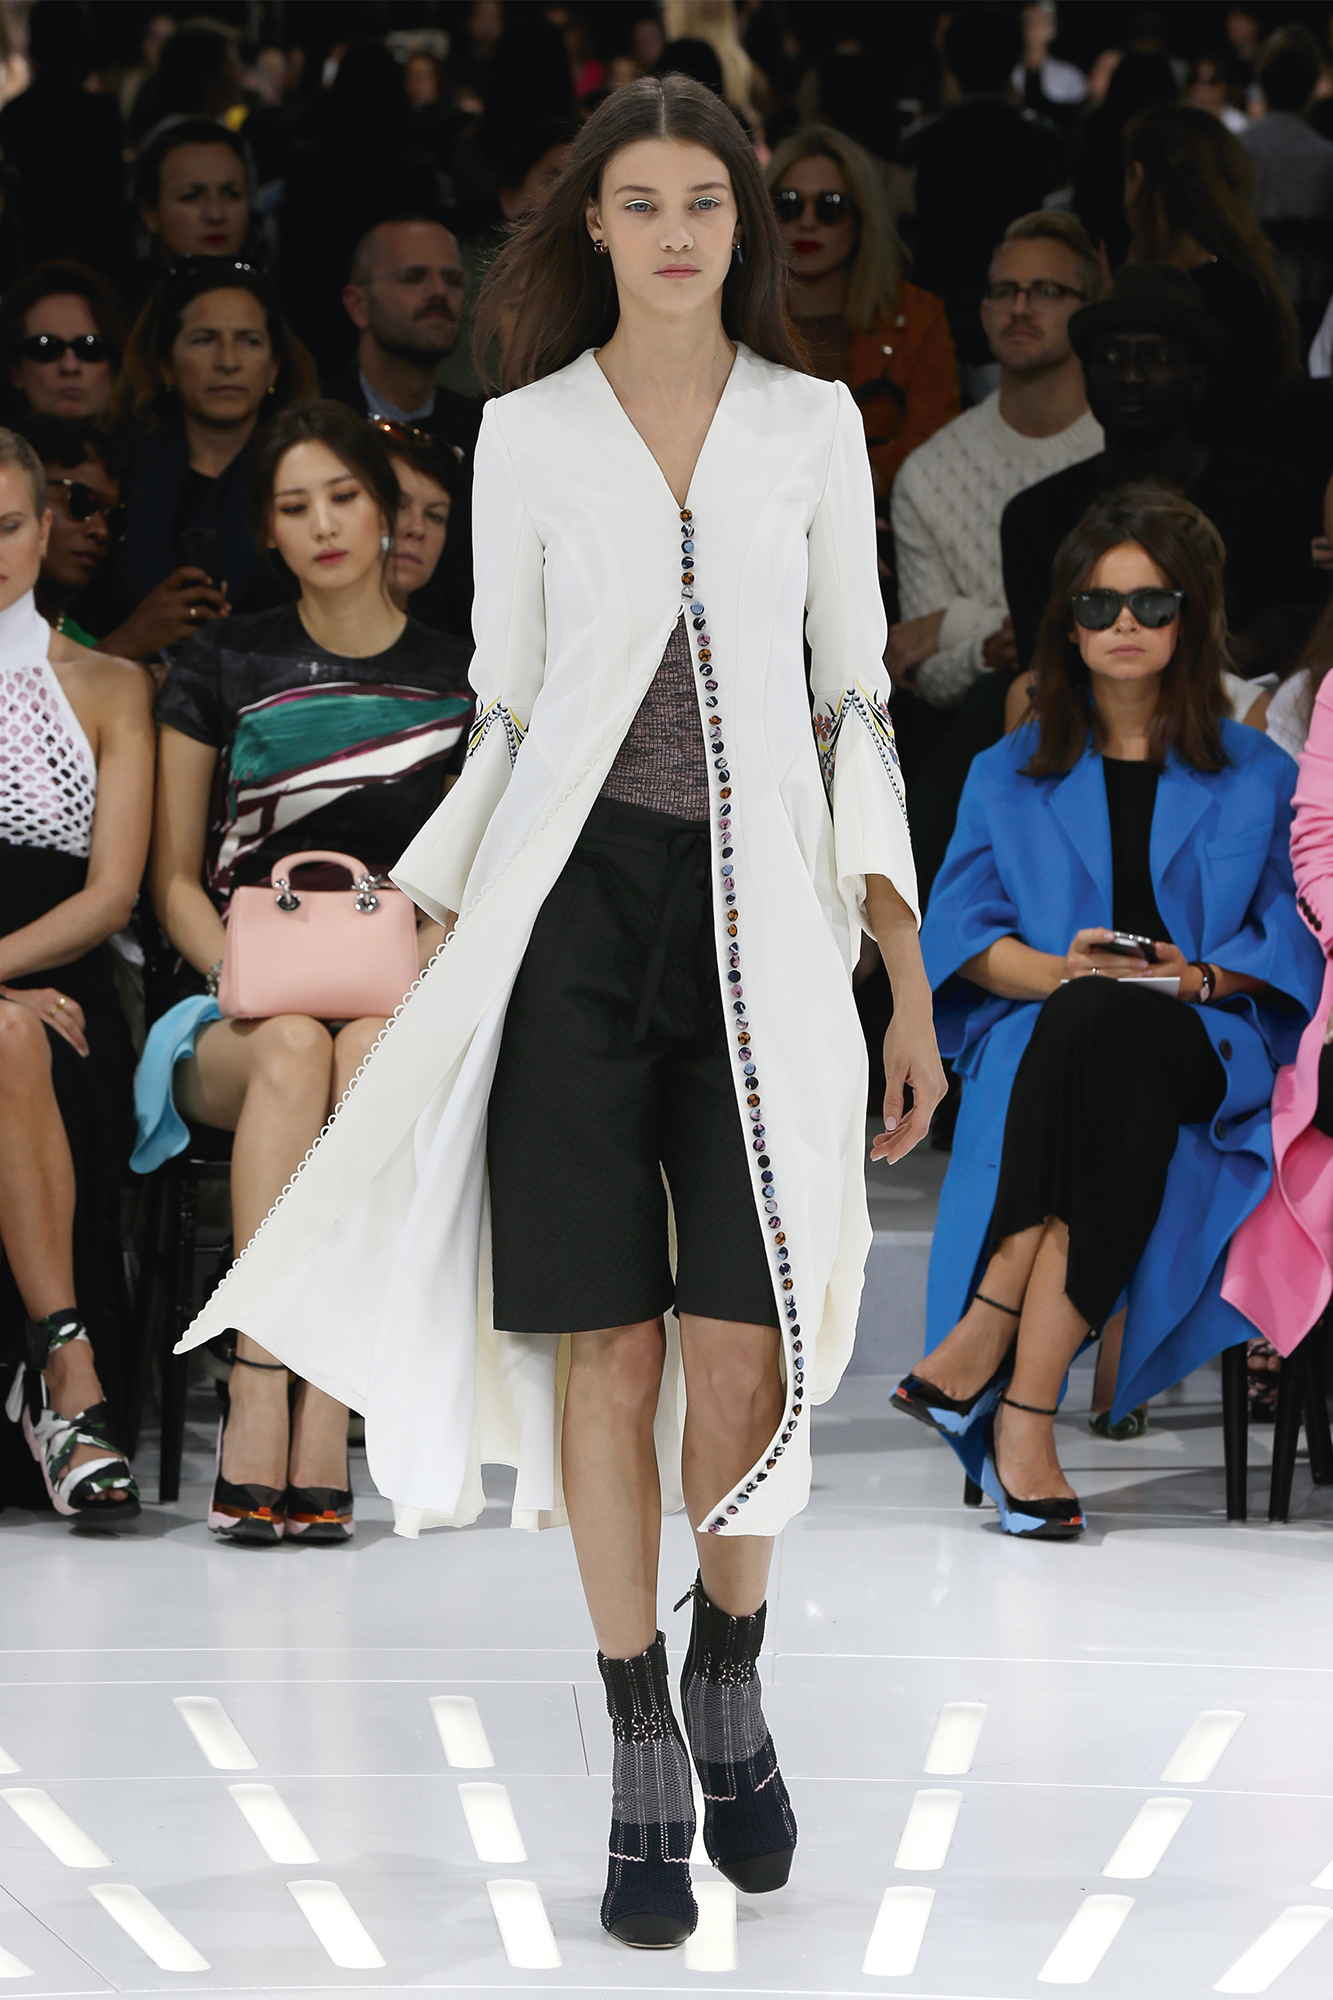 Christian Dior Haute Couture Spring-Summer Ready To Wear Dresses & Accessories Collection 2015-16 (2)